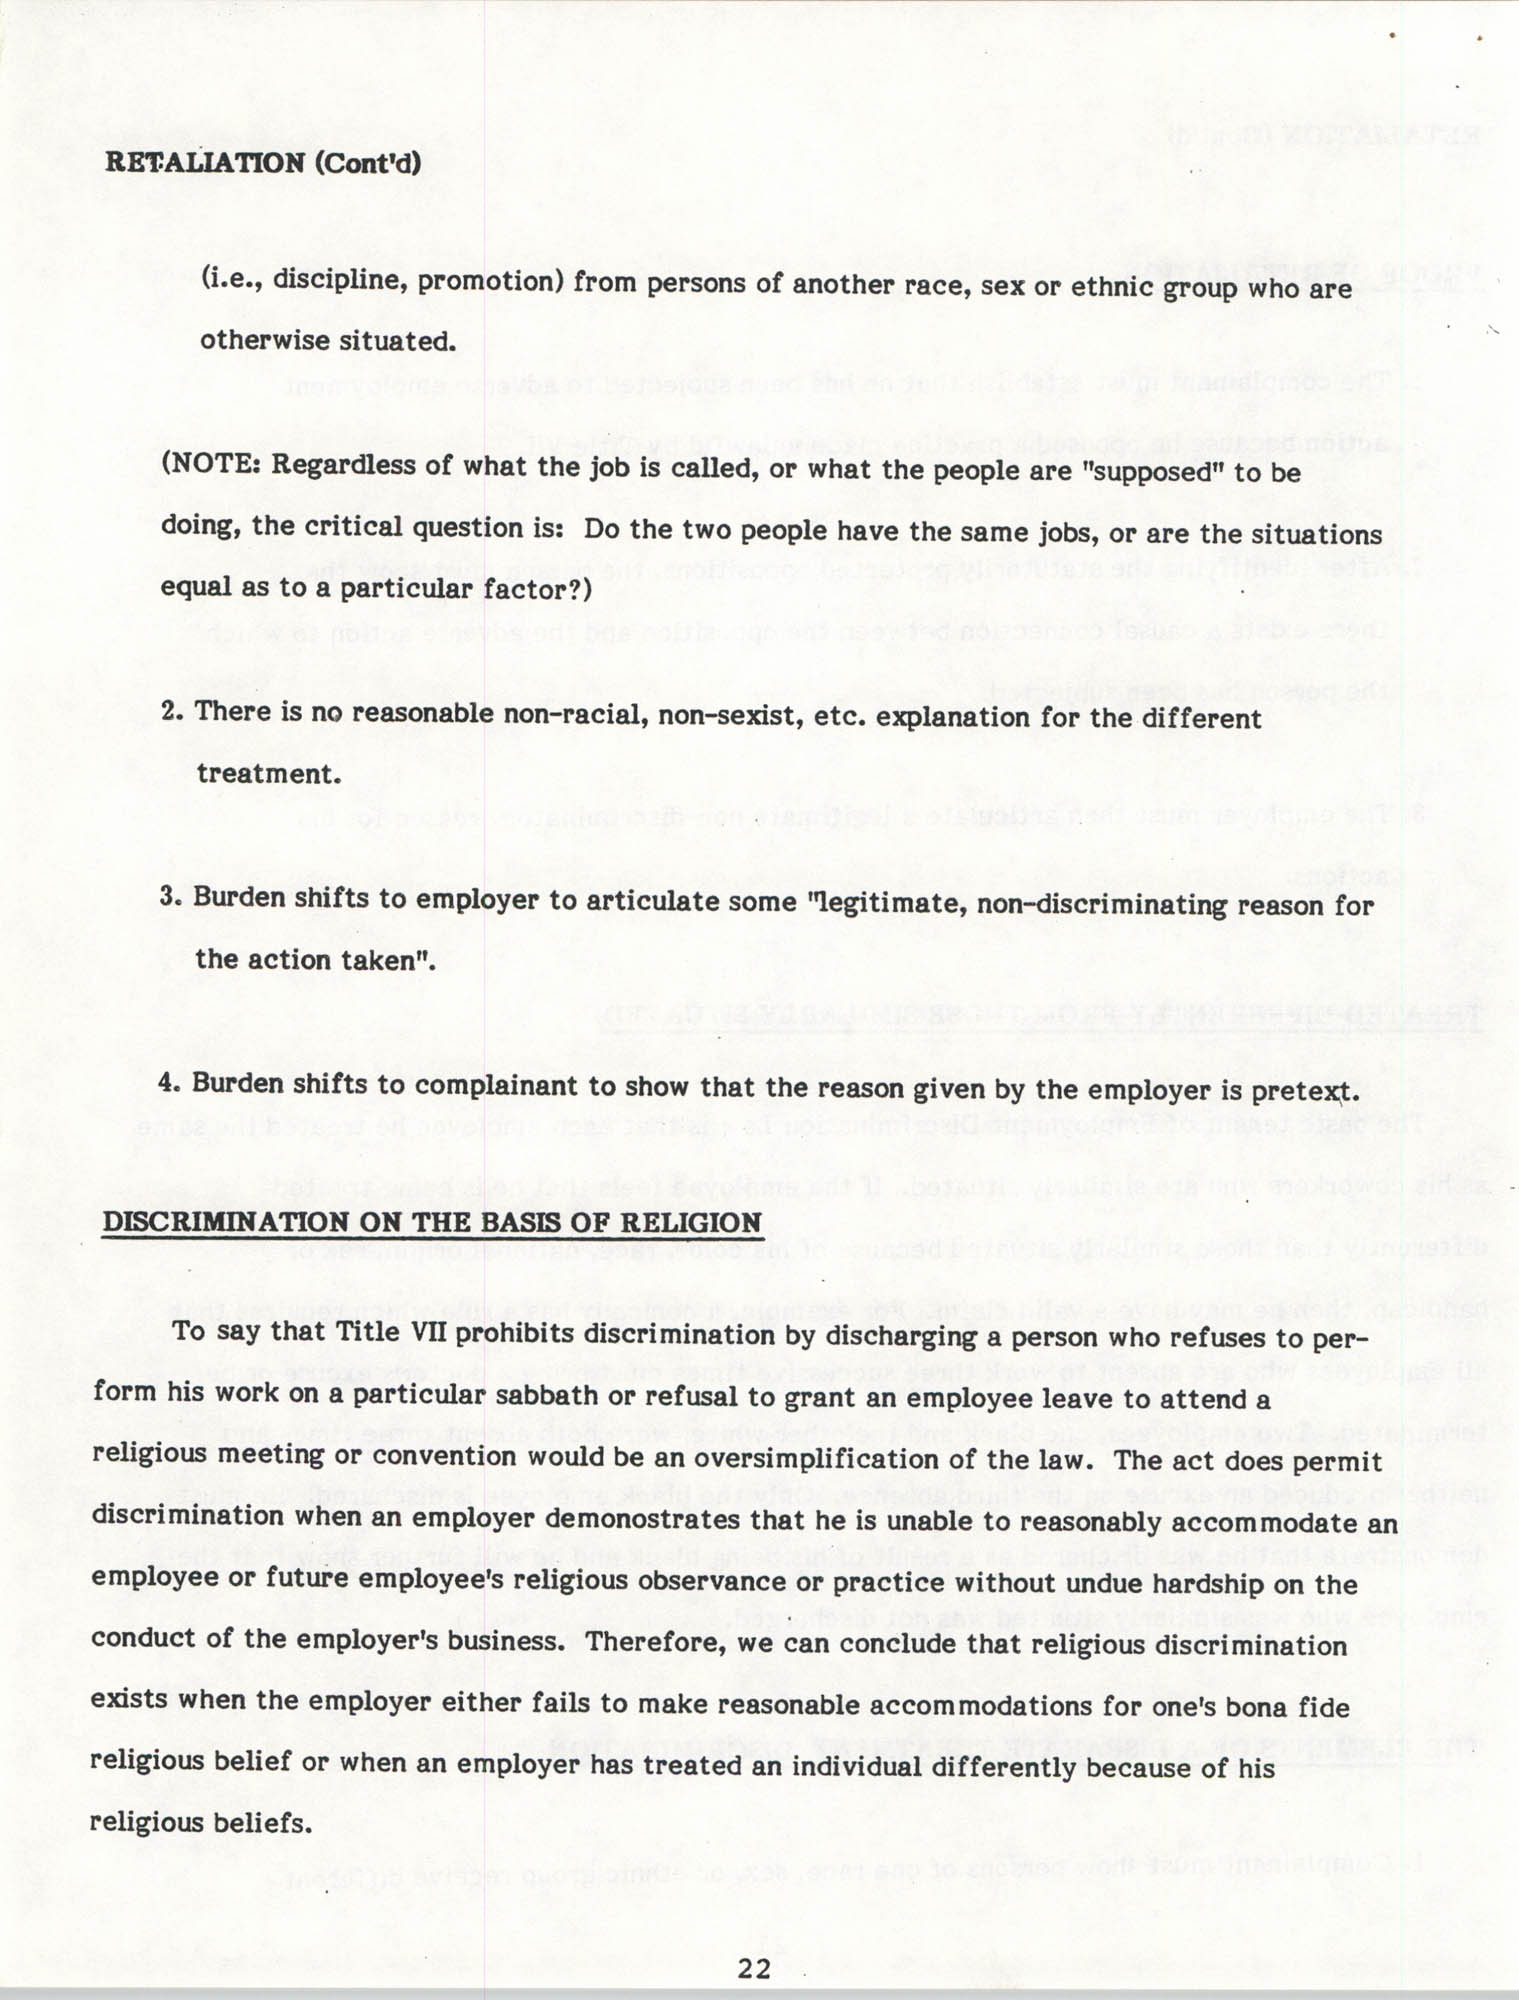 Handbook for Addressing Discrimination Complaints, NAACP Labor and Industry Committees, Page 22